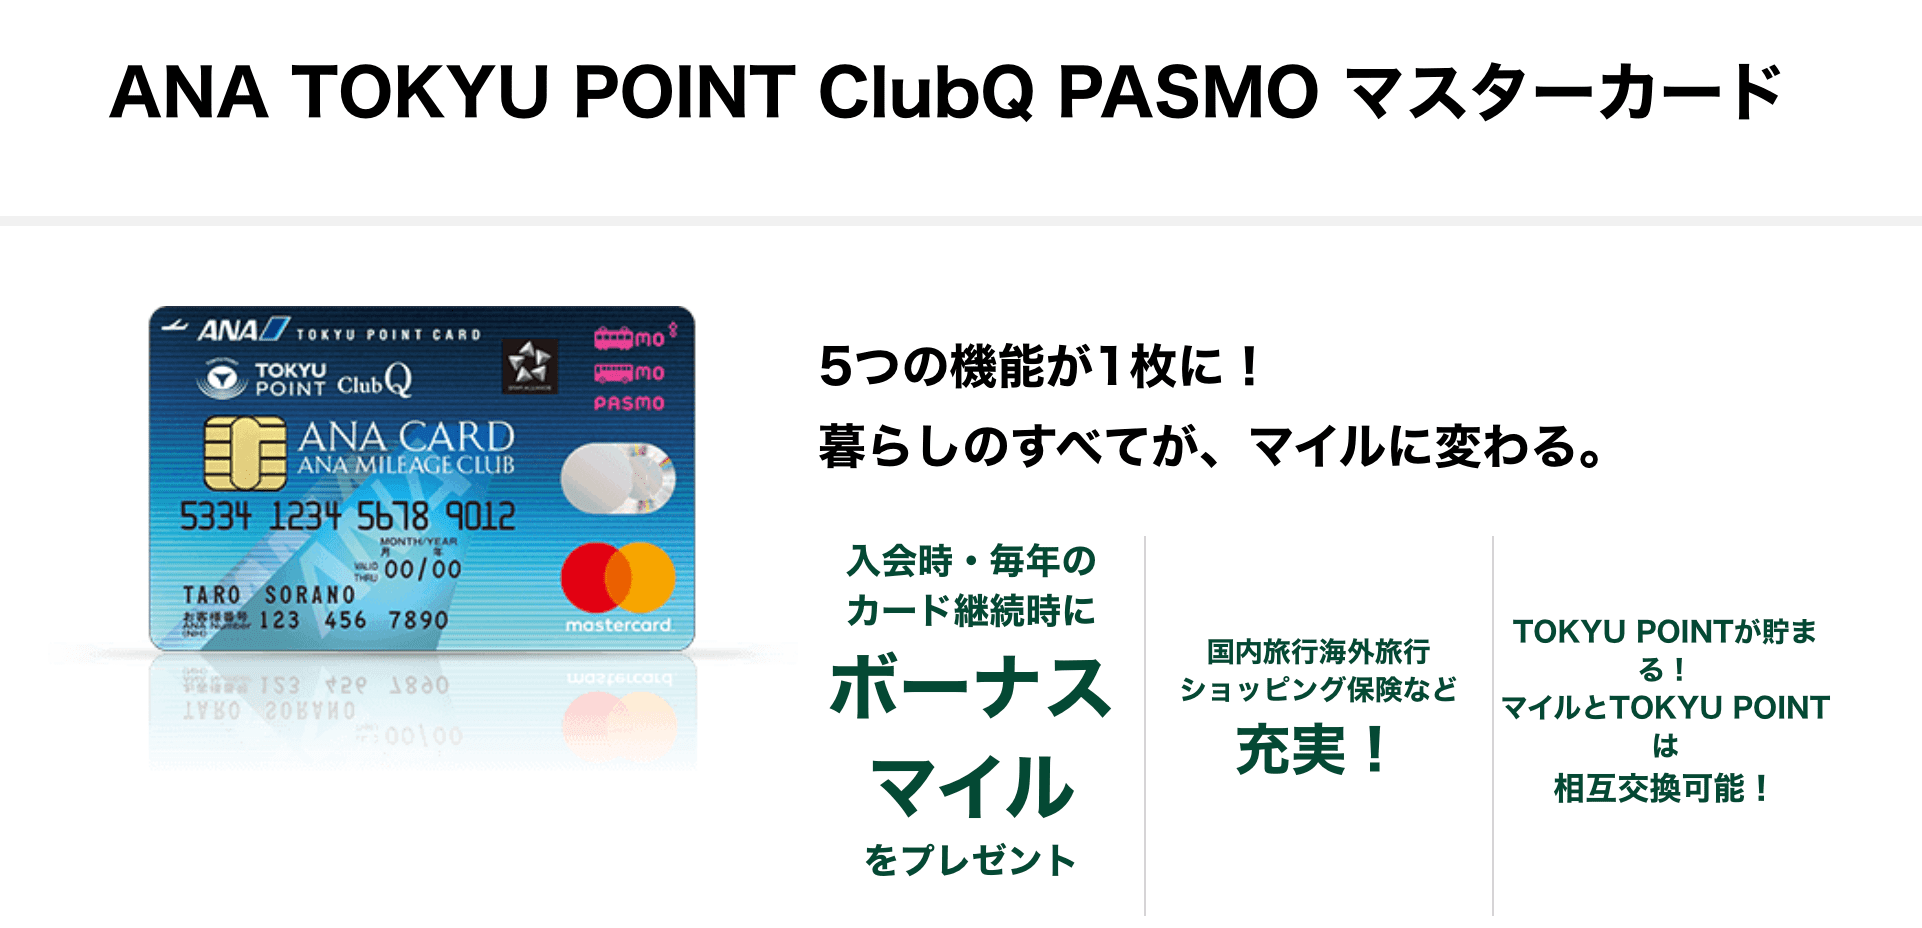 NA TOKYU POINT ClubQ PASMO マスターカード